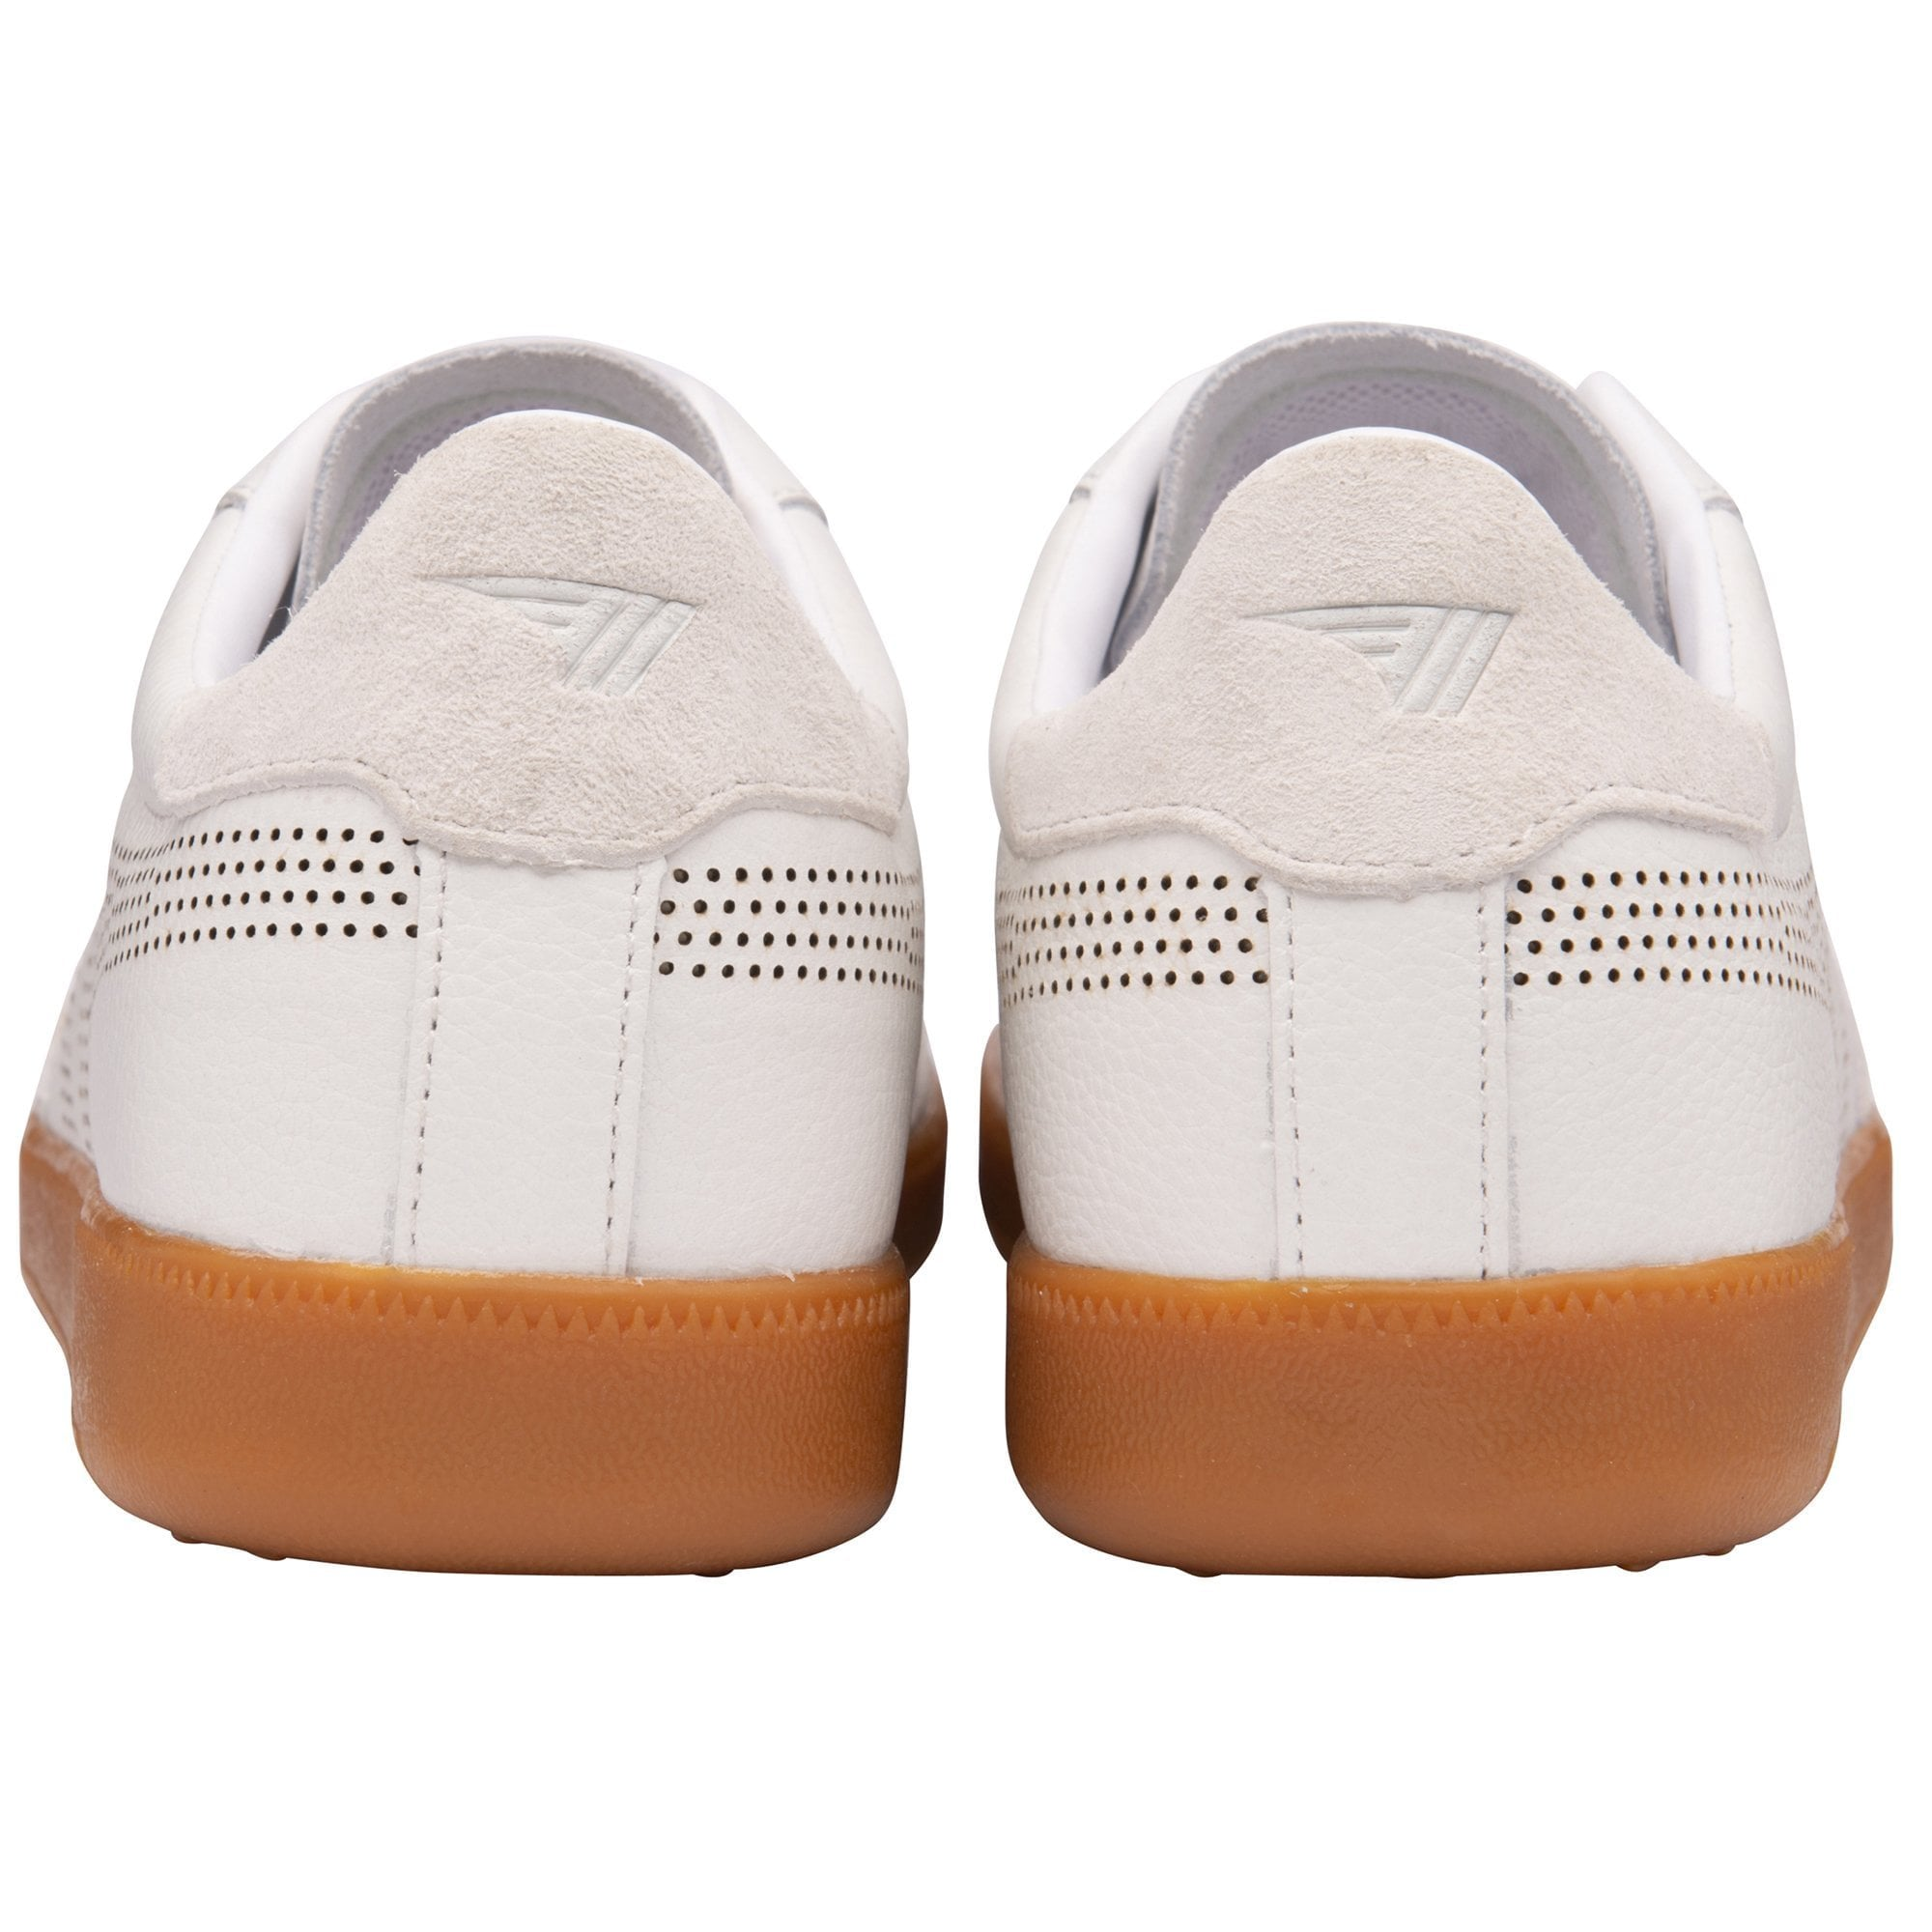 Men's Ace Leather Sneakers